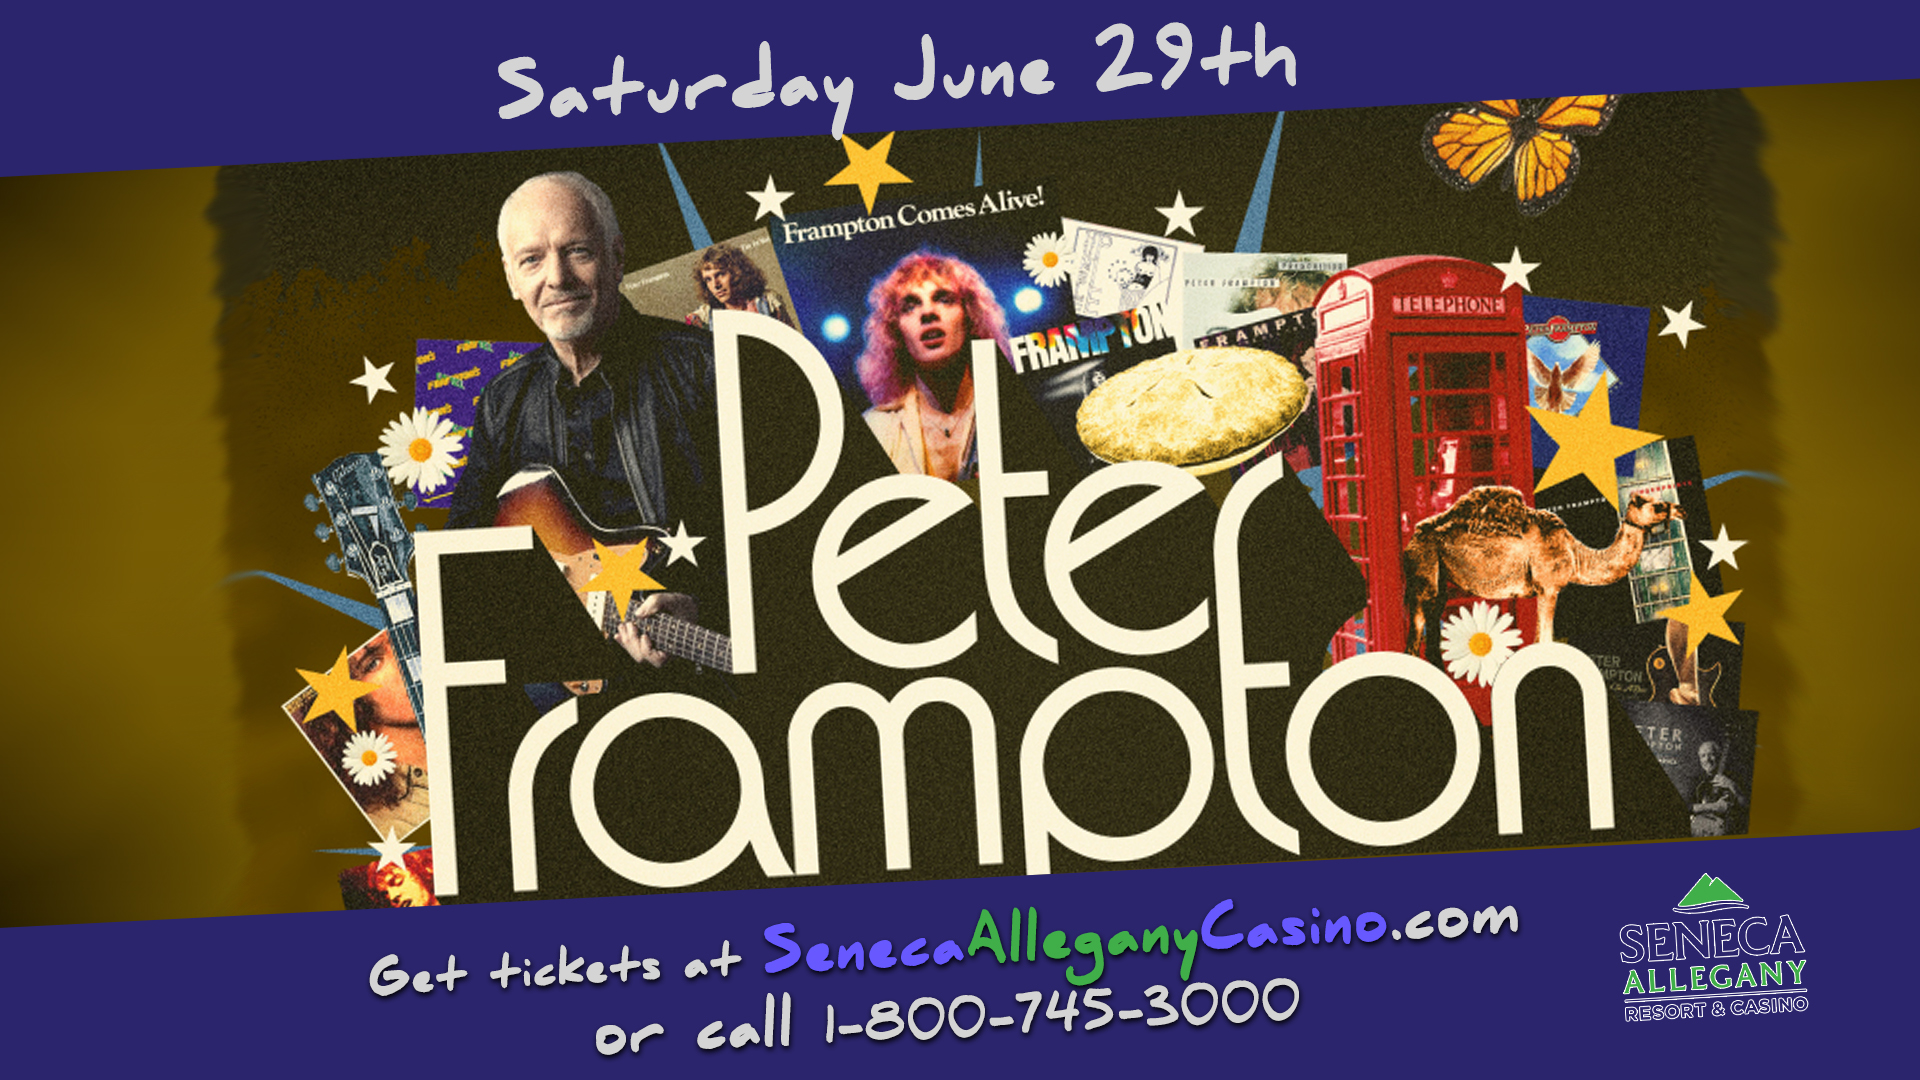 Peter Frampton at the Seneca Allegany Casino